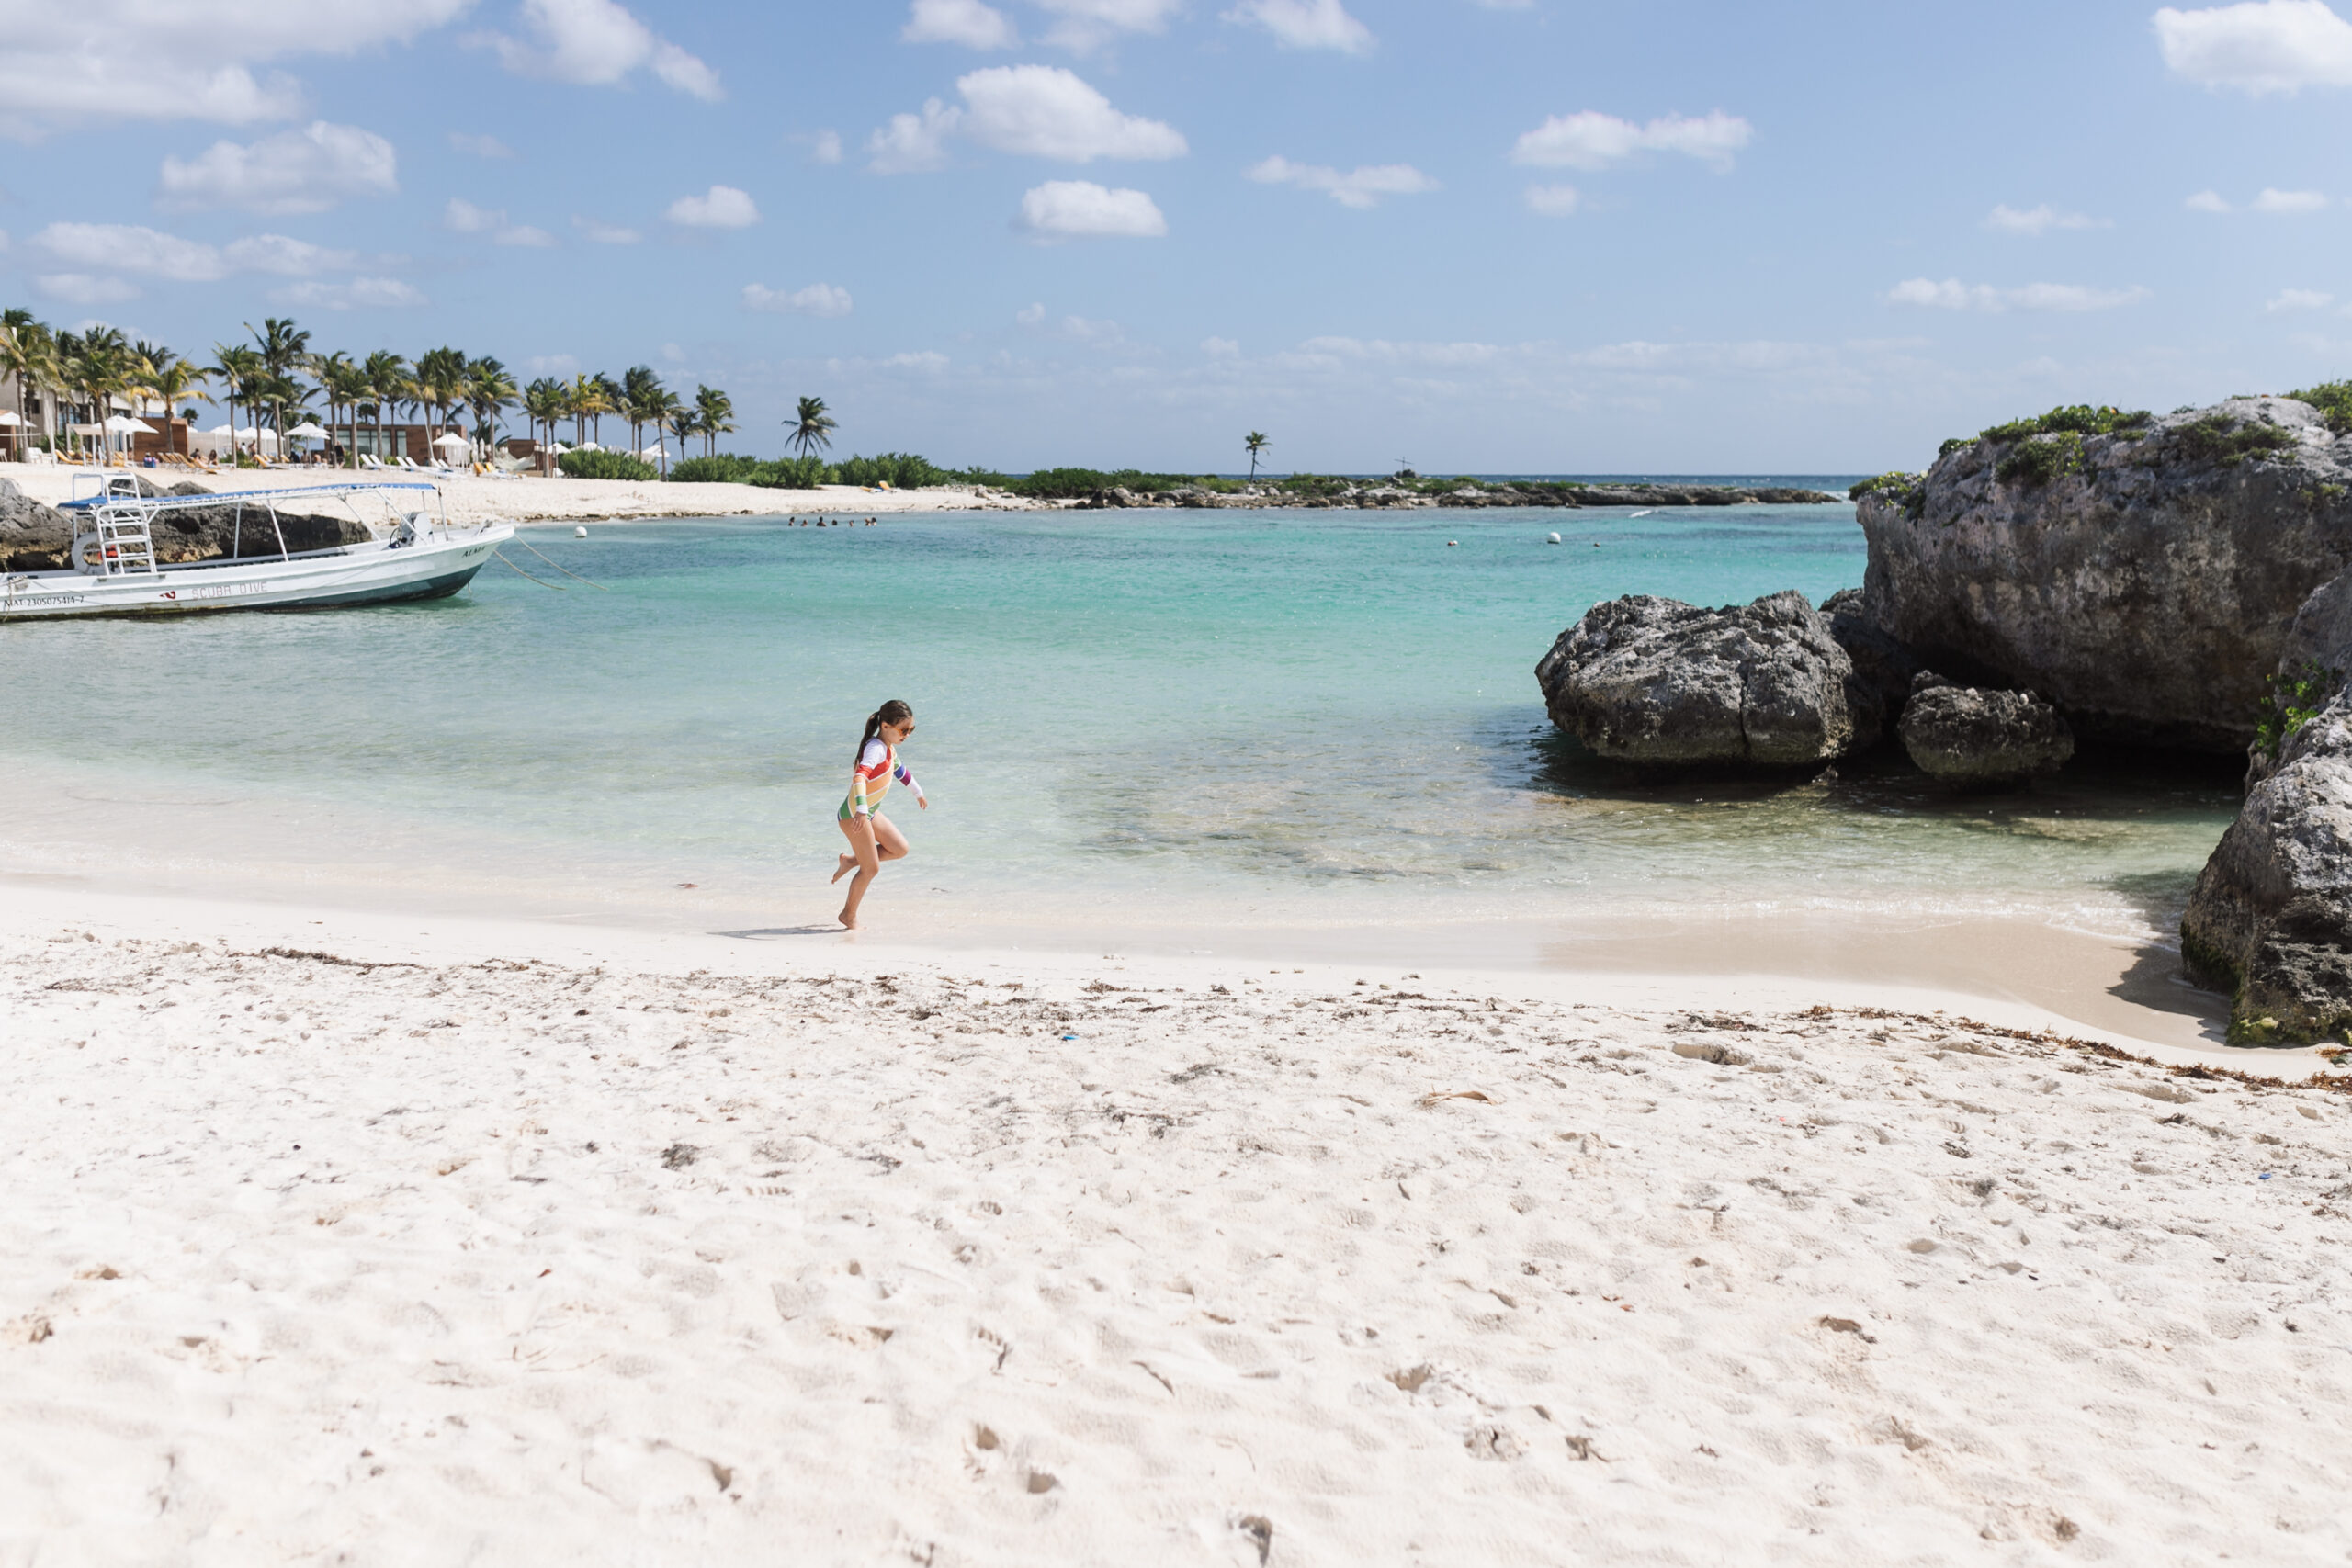 blue skies and turquoise waters at the grand sirenis riviera maya resort #theldltravles #visitmexico #mexicotravel